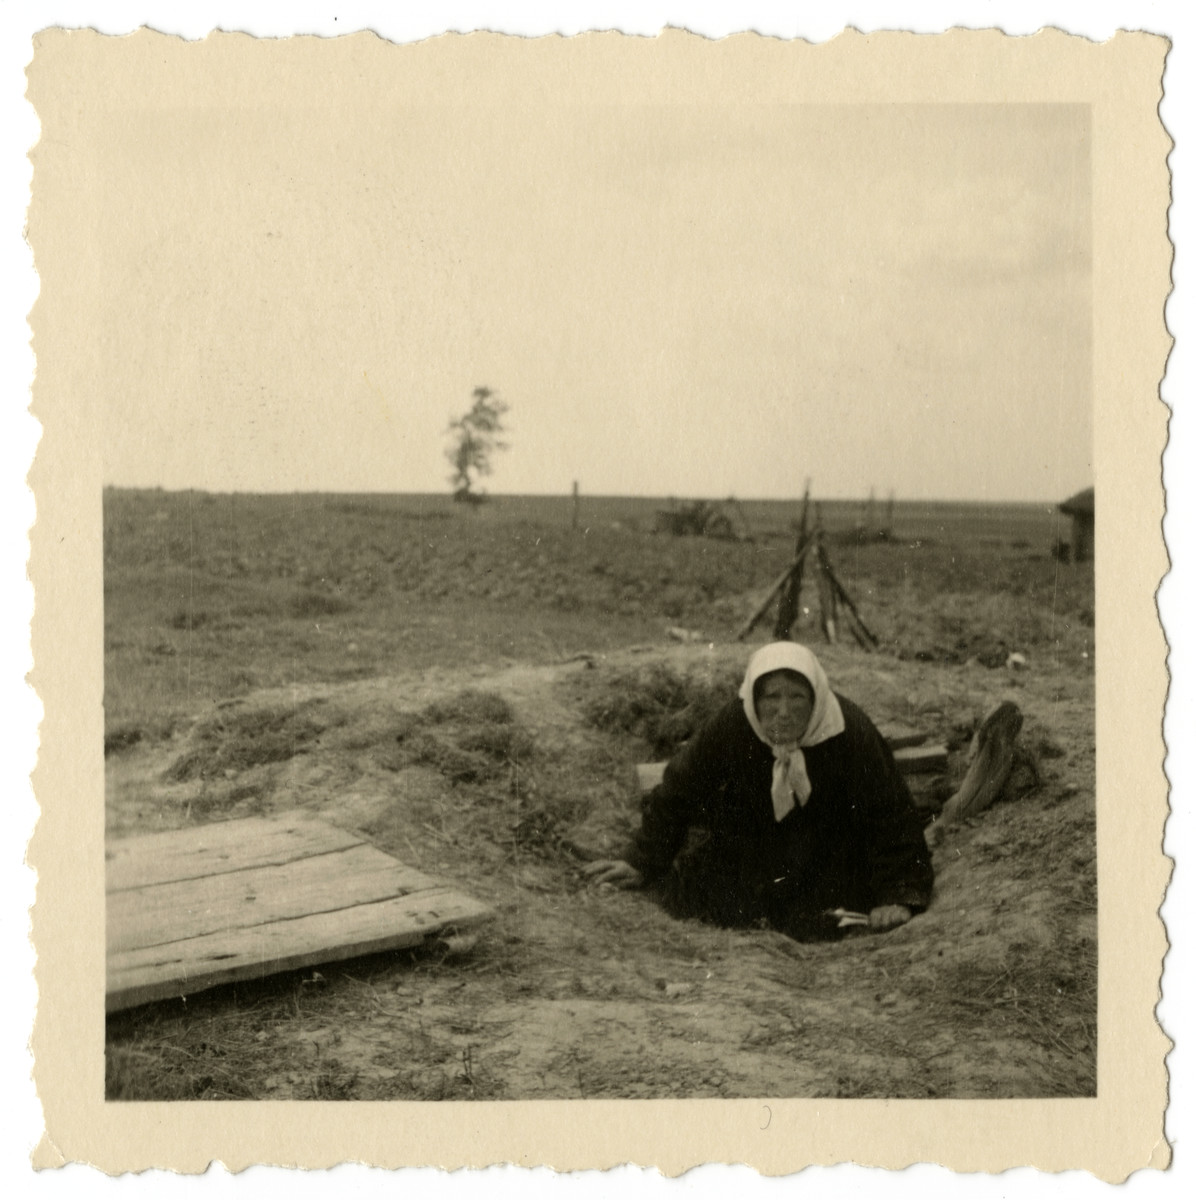 A woman emerges from an underground bunker in a field in an unidentified location.